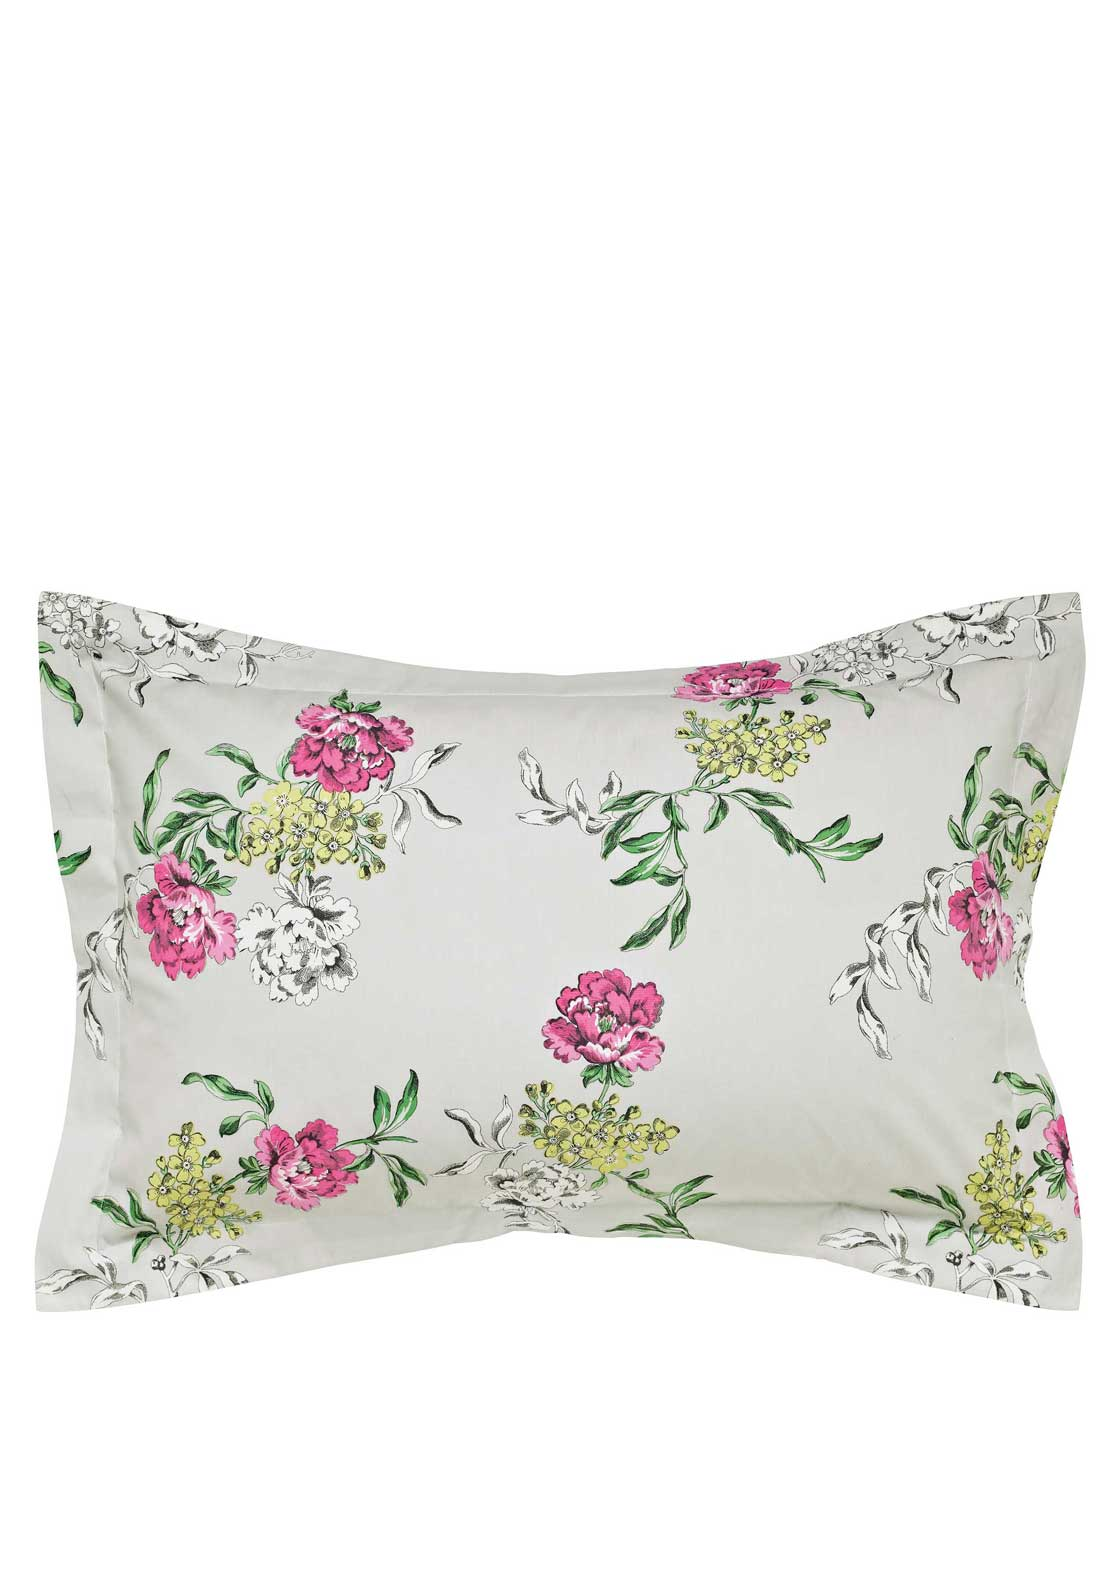 Joules Dream on Buckingham Floral Oxford Pillowcase 100% Cotton Percale, Crème with Multi Floral Pri